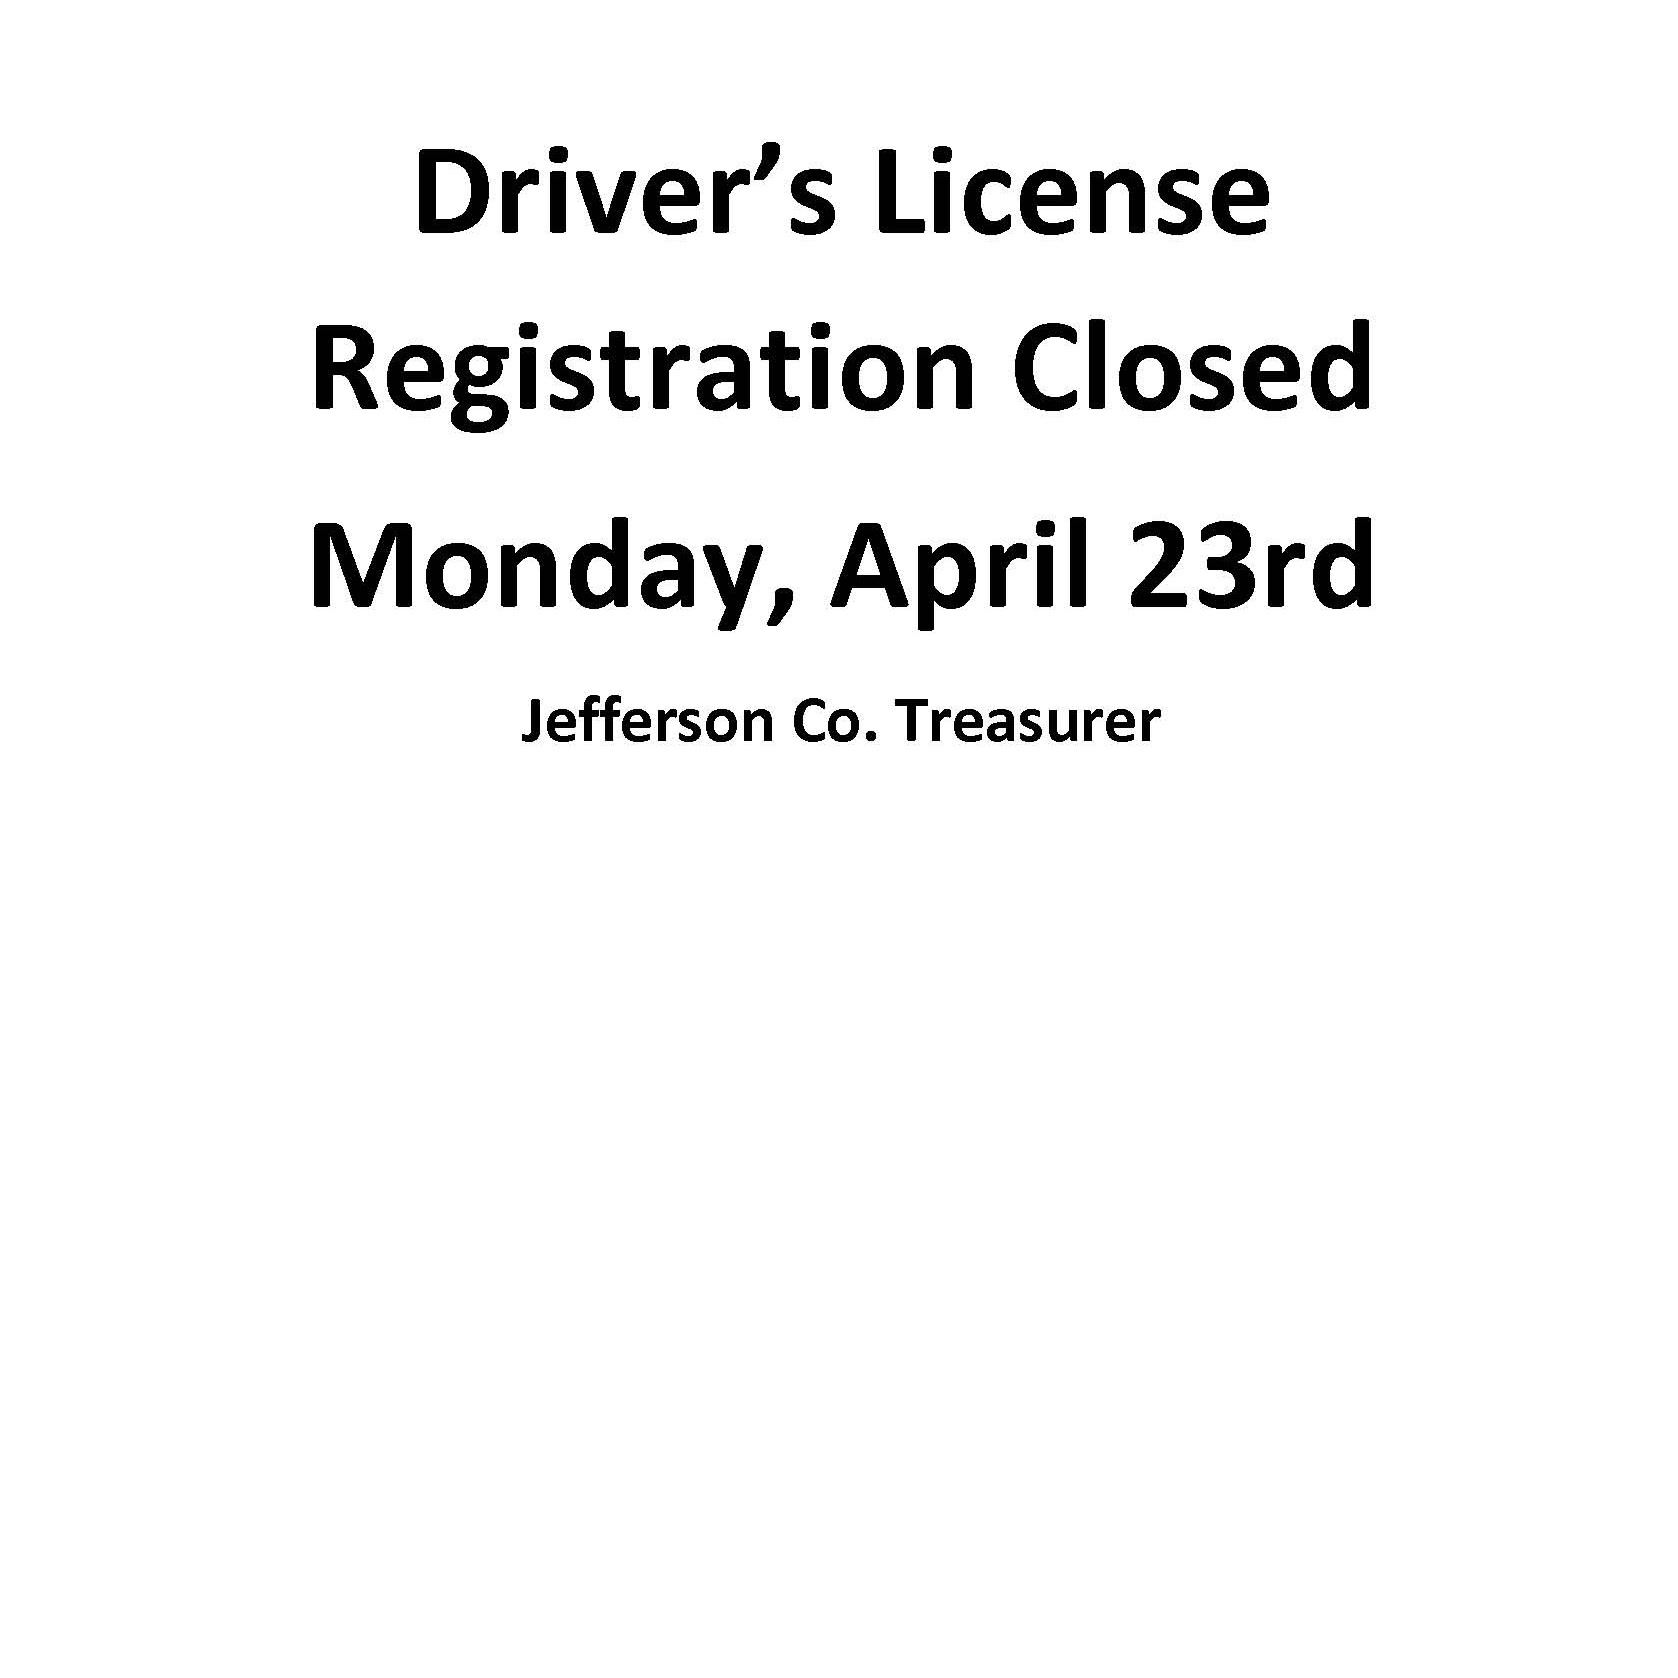 Drivers License Closed April 23